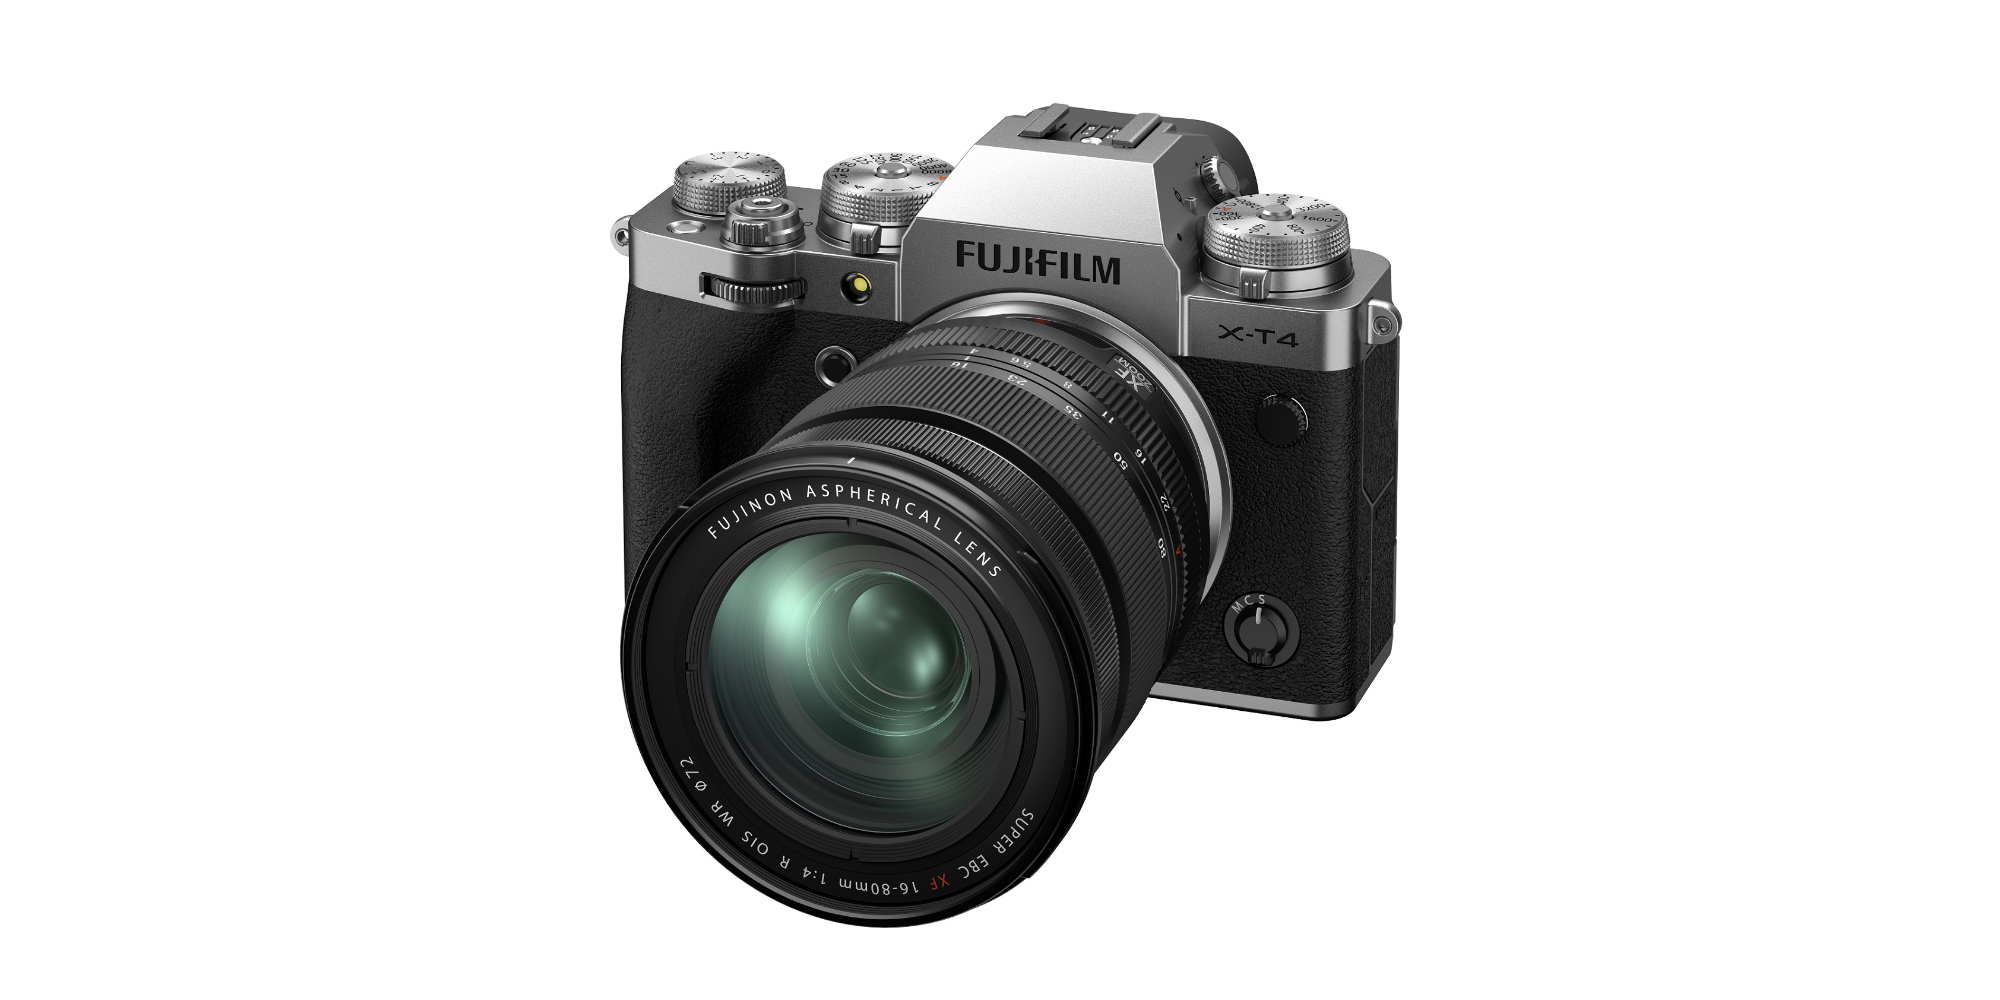 New Fujifilm X-T4 leaps forward with in-body image stabilization - 9to5Toys